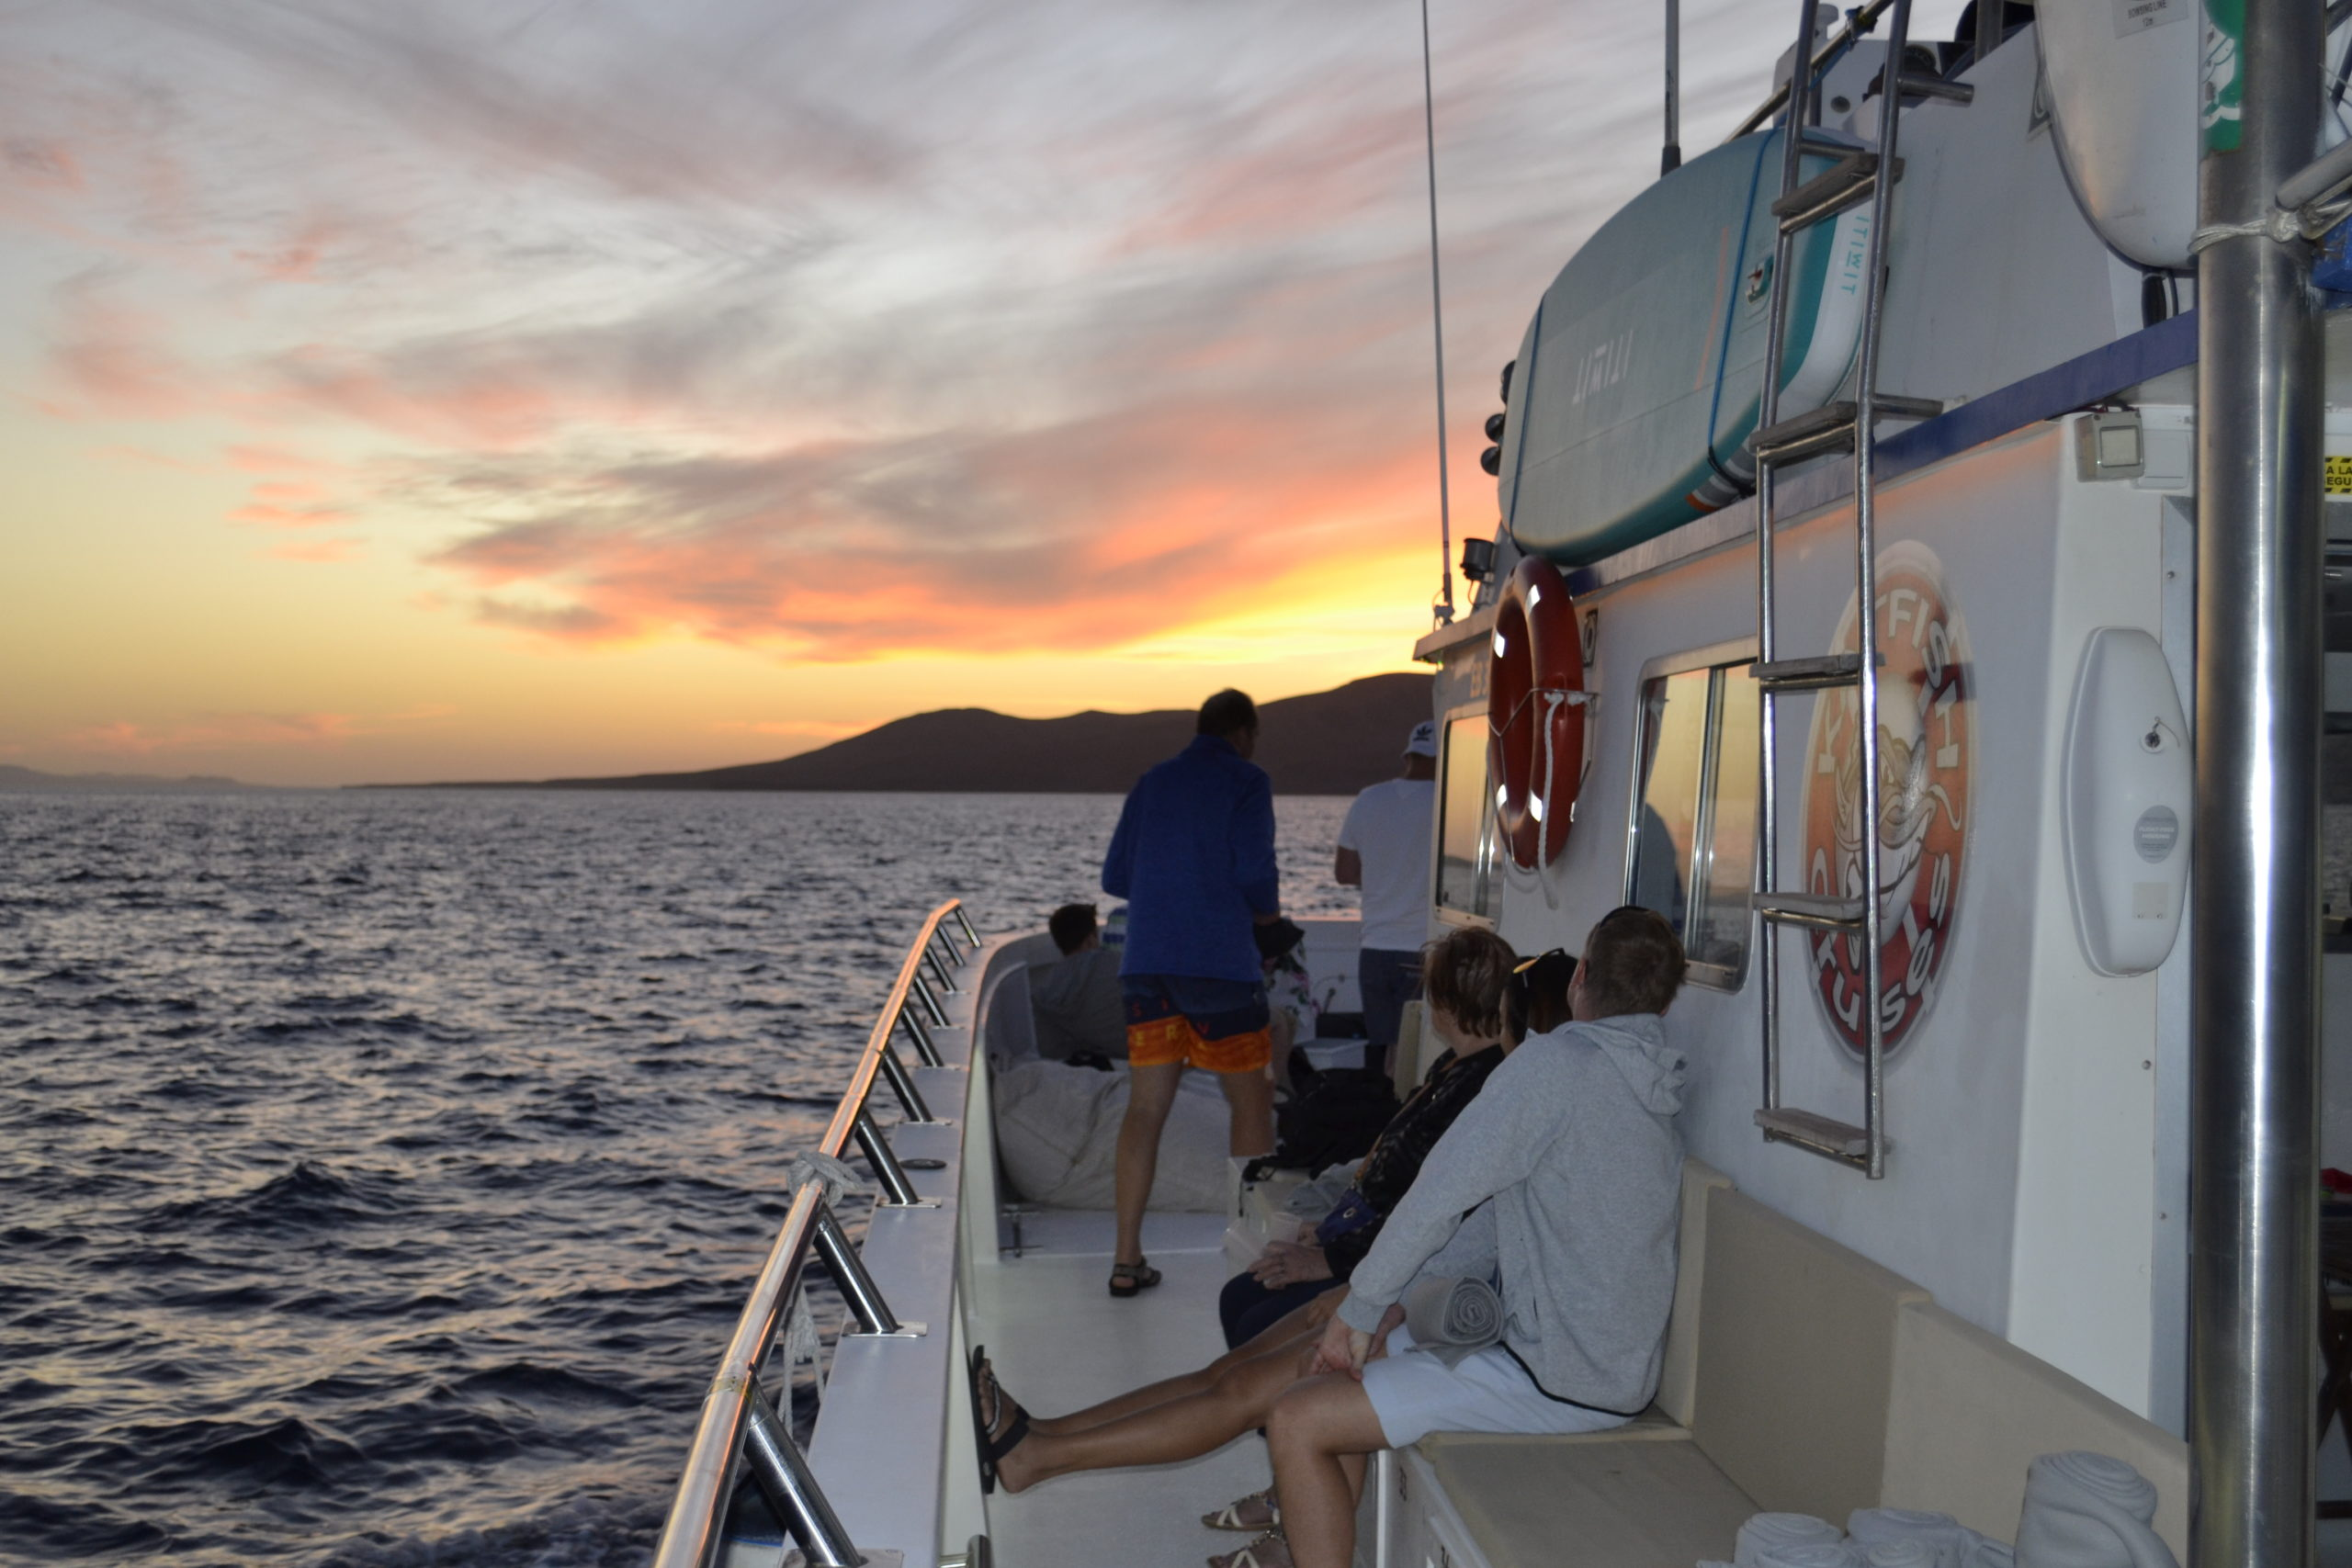 sunset cruise in lanzarote